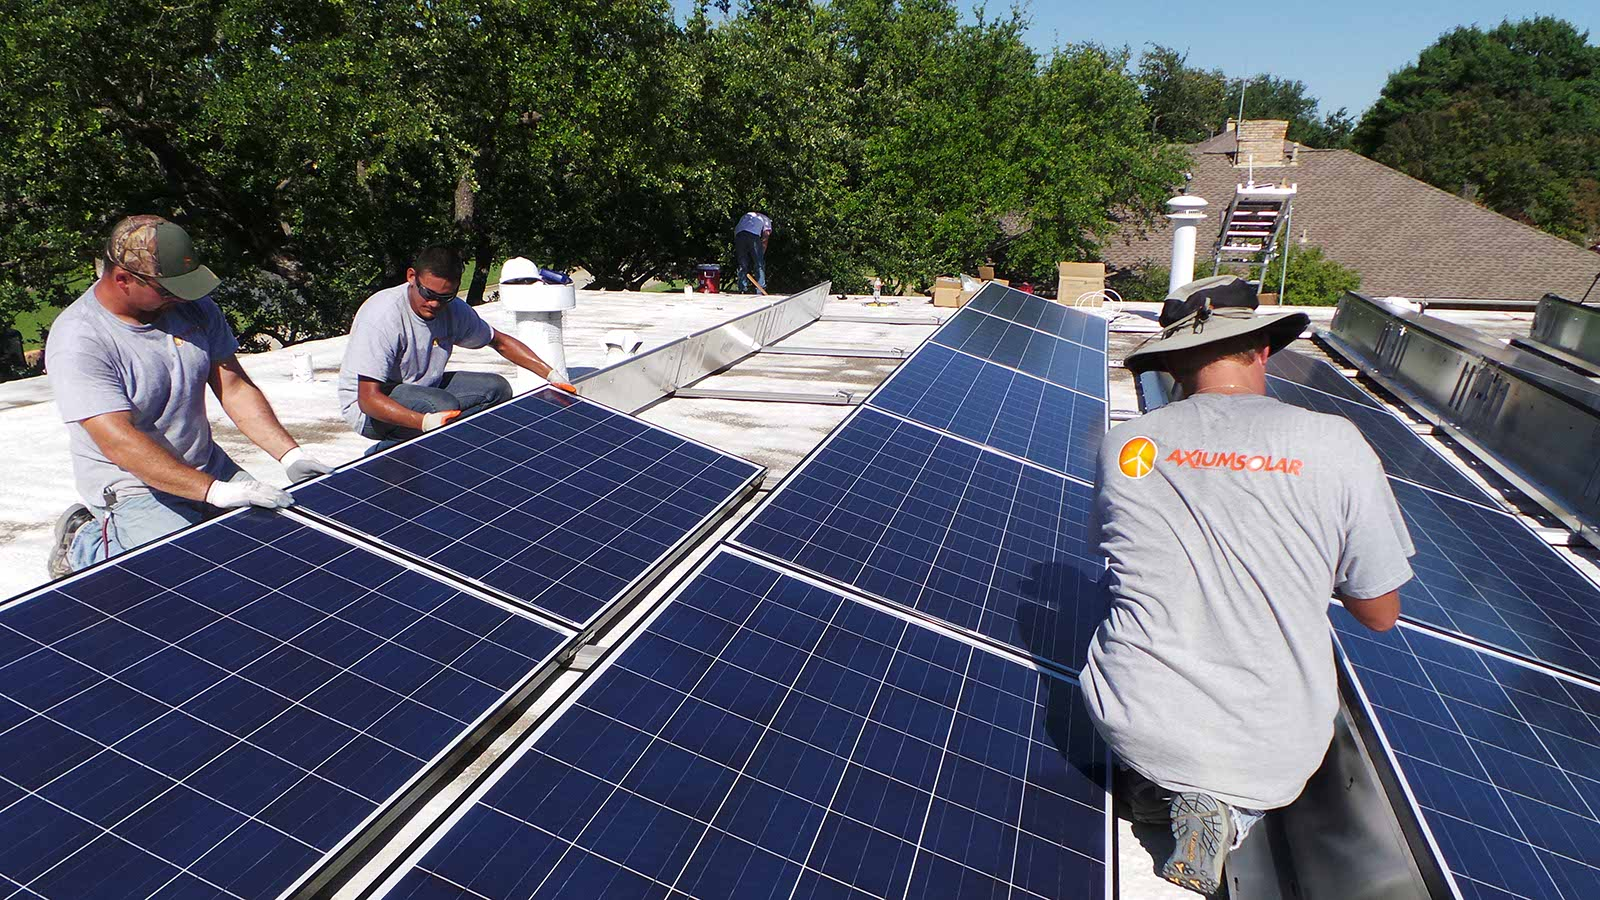 Installing the Solar Panels